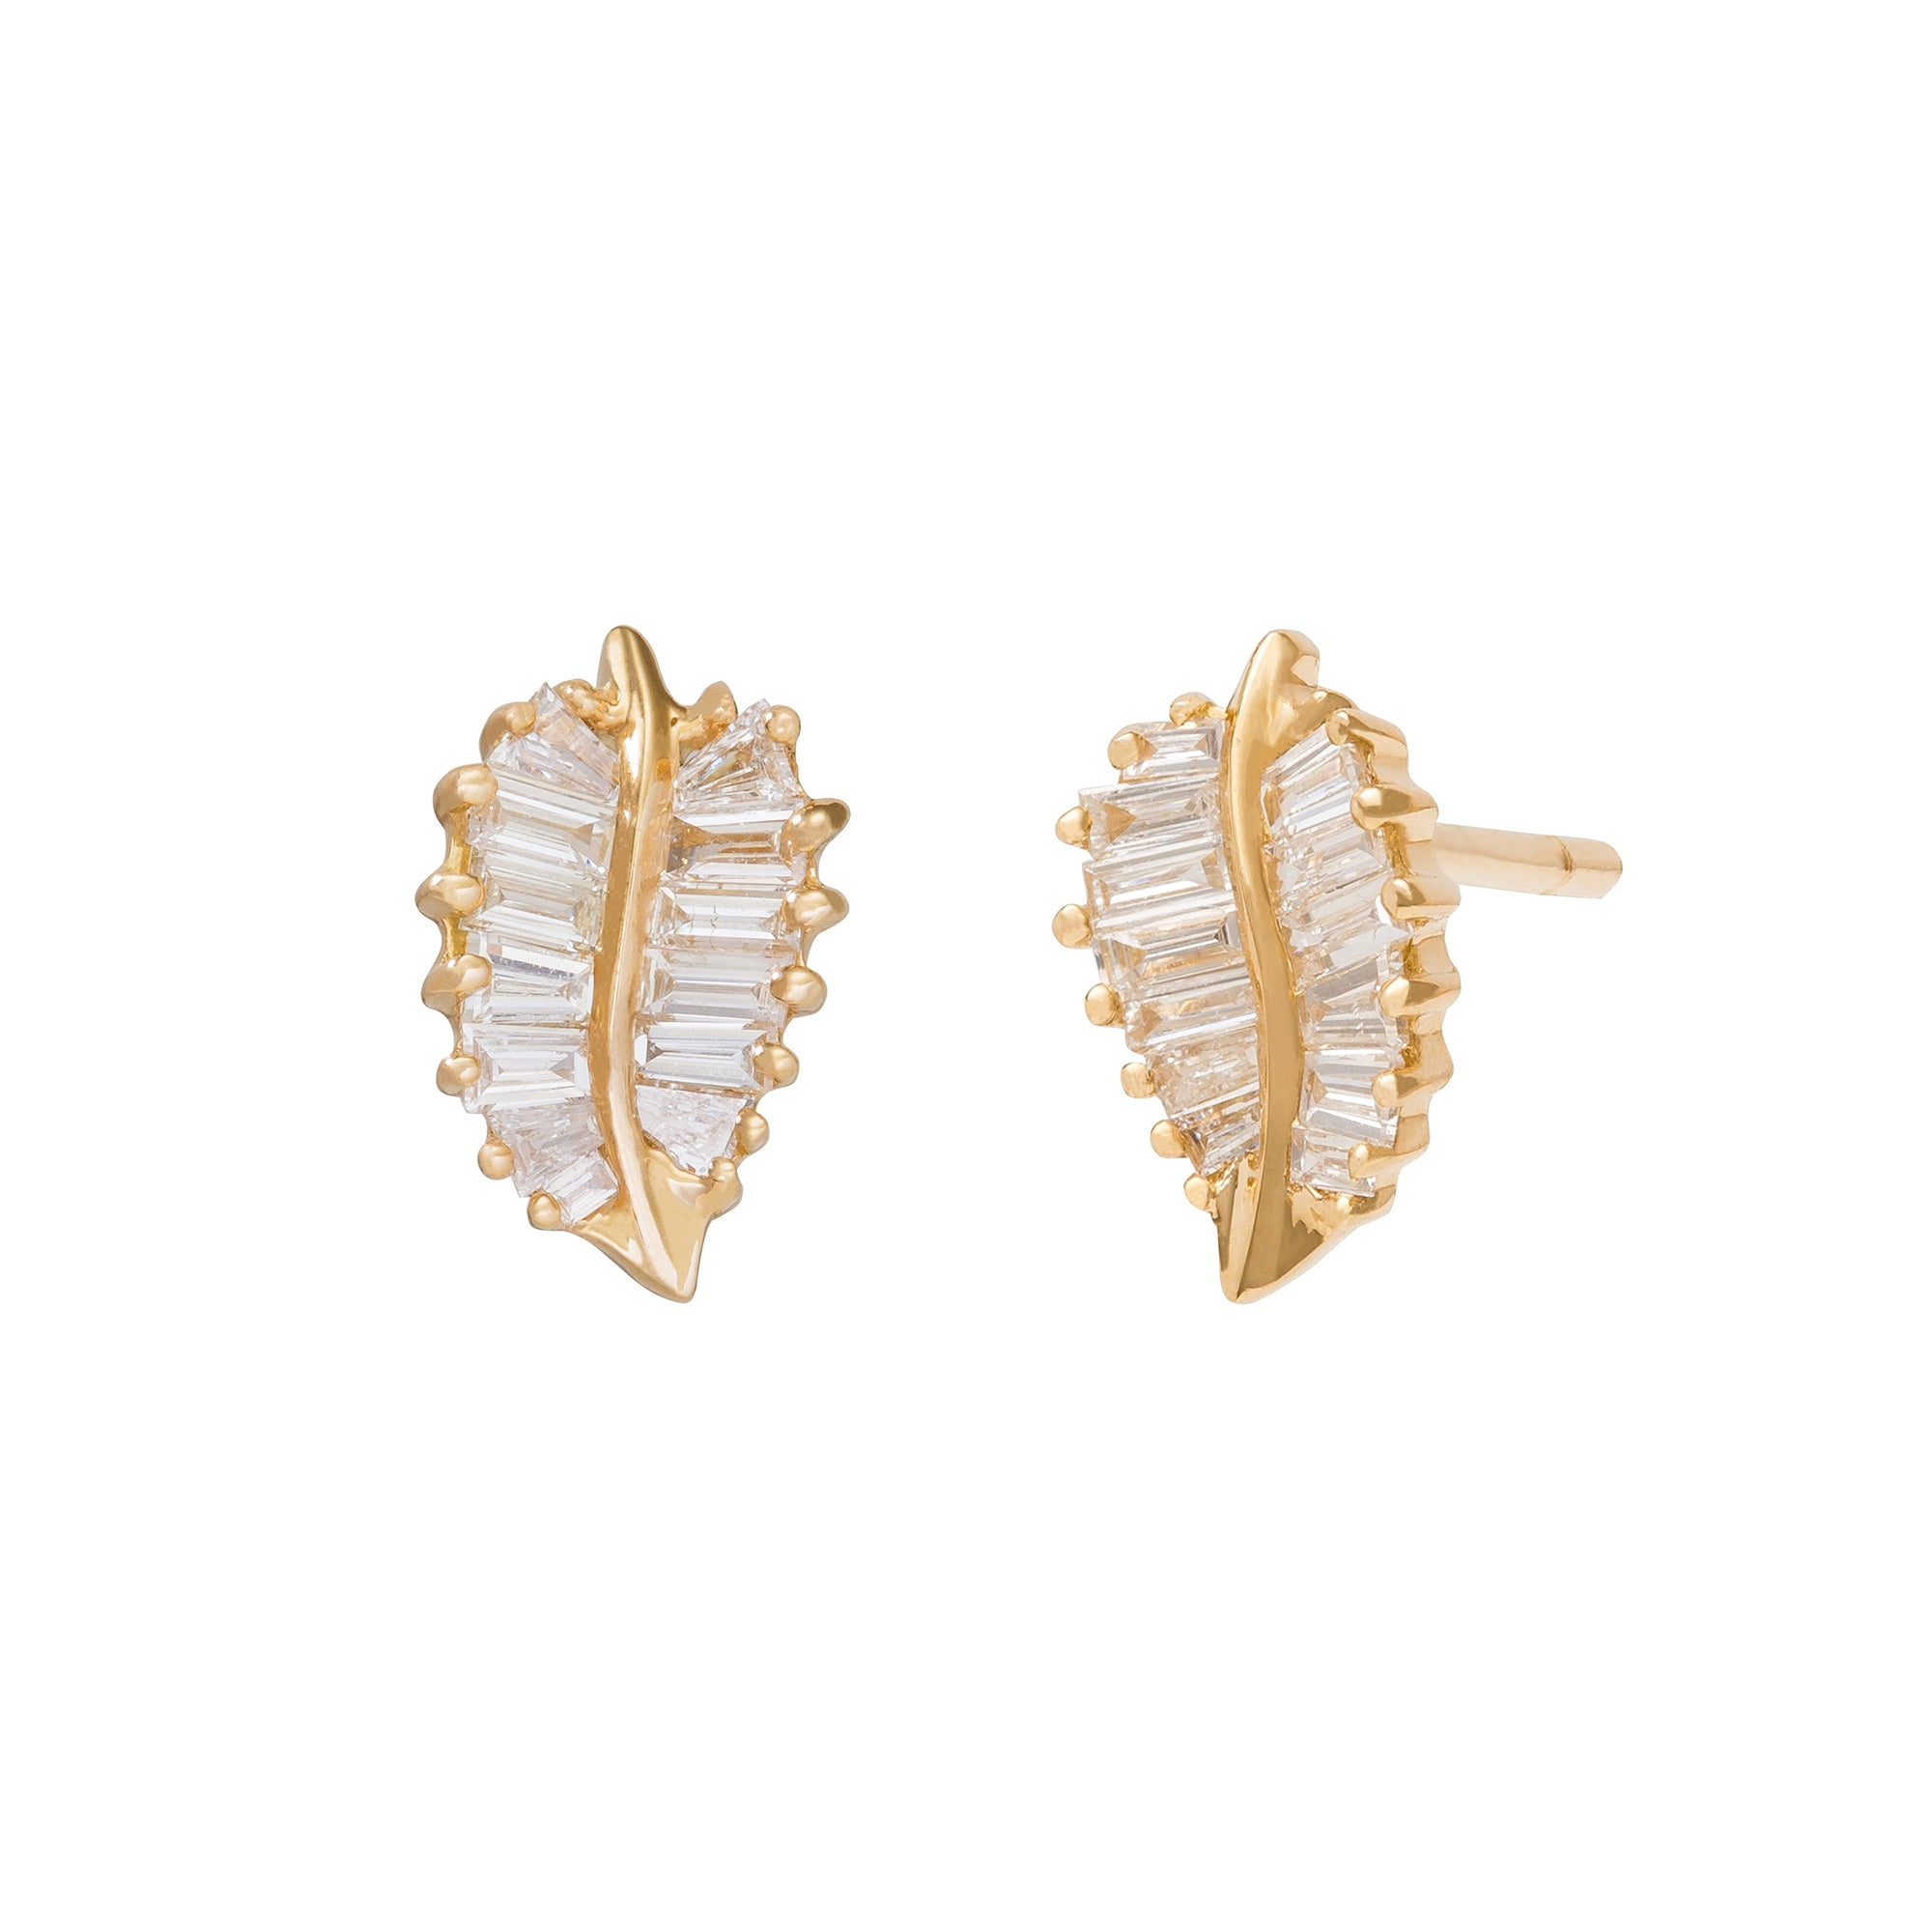 Palm Leaf Studs - Small by Anita Ko - Earrings - Broken English Jewelry